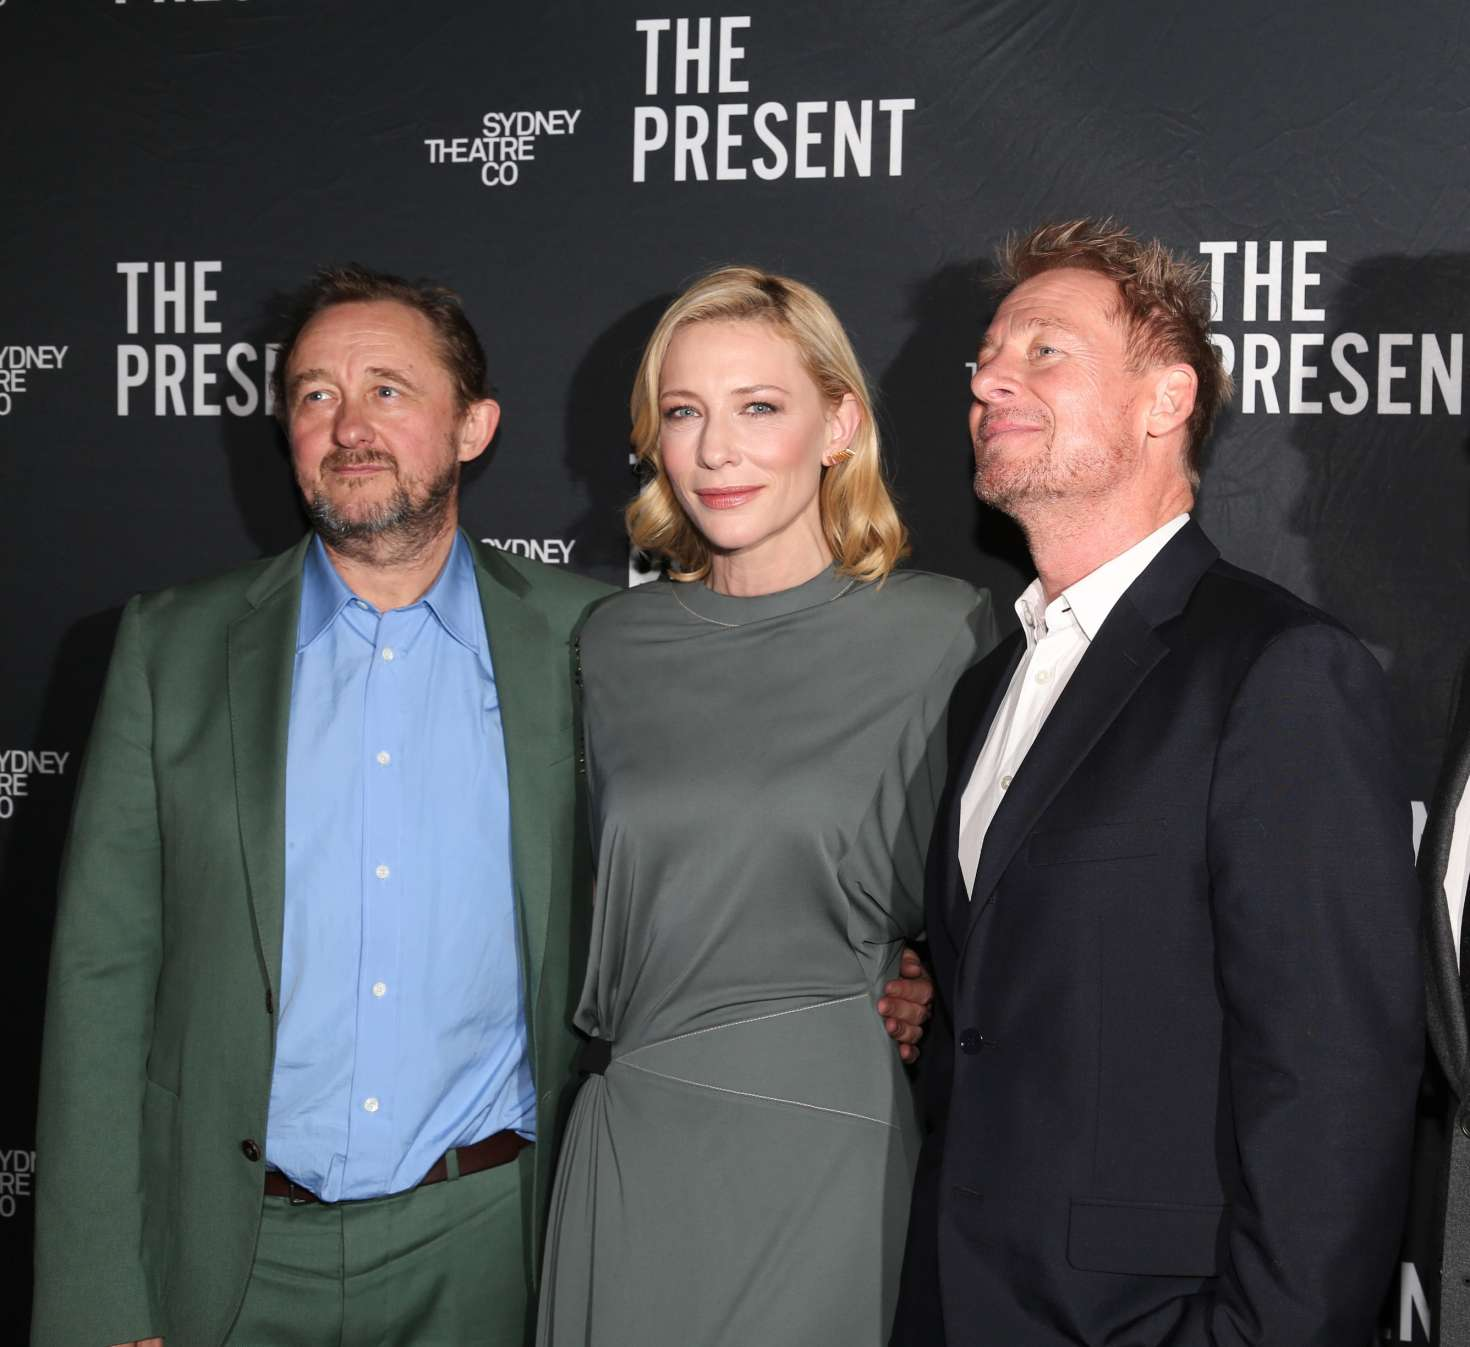 Cate Blanchett - 'The Present' Broadway play opening night party in NY